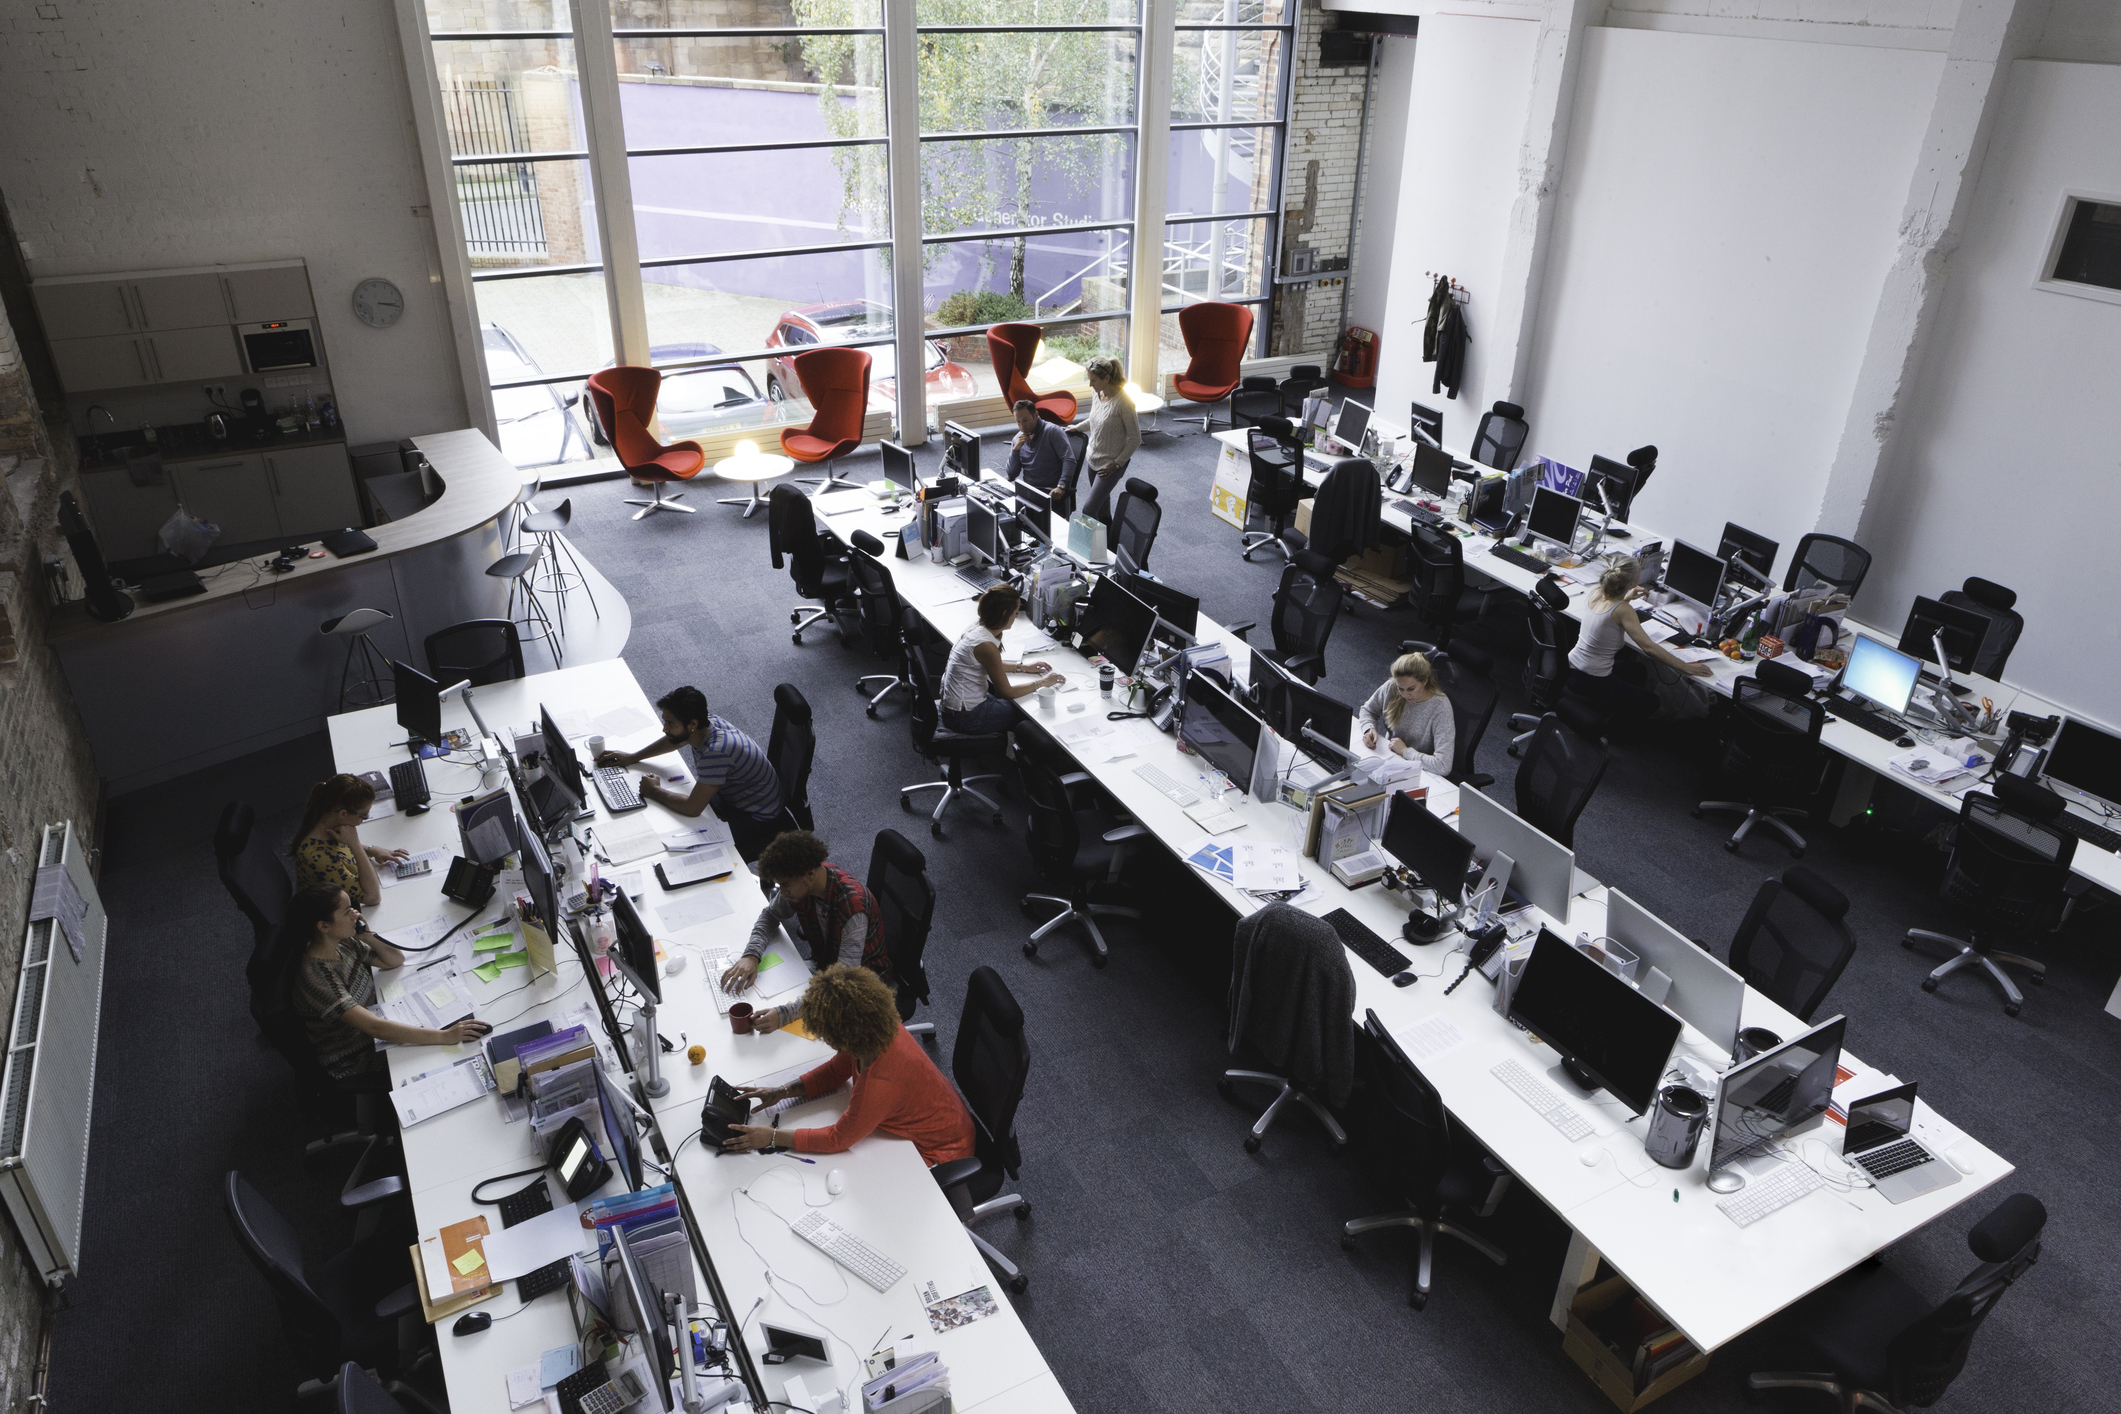 Open plan offices drive down face to face interactions and